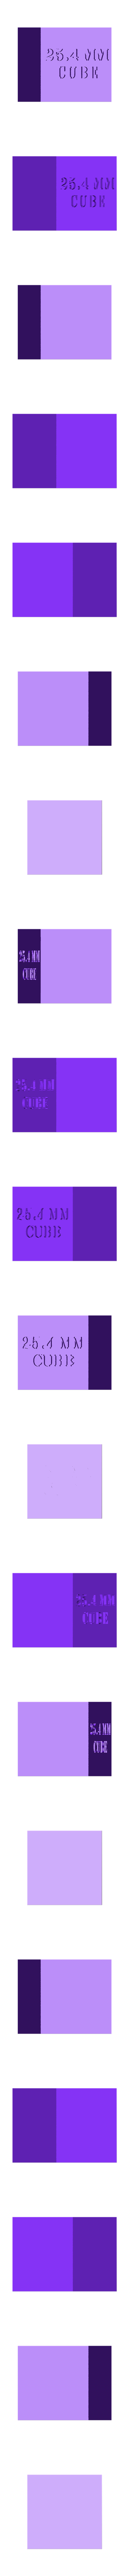 1 Inch Reference Cube-MM.stl Download free STL file 25.4mm/1 Inch Reference Cube • 3D printer template, johnbearross